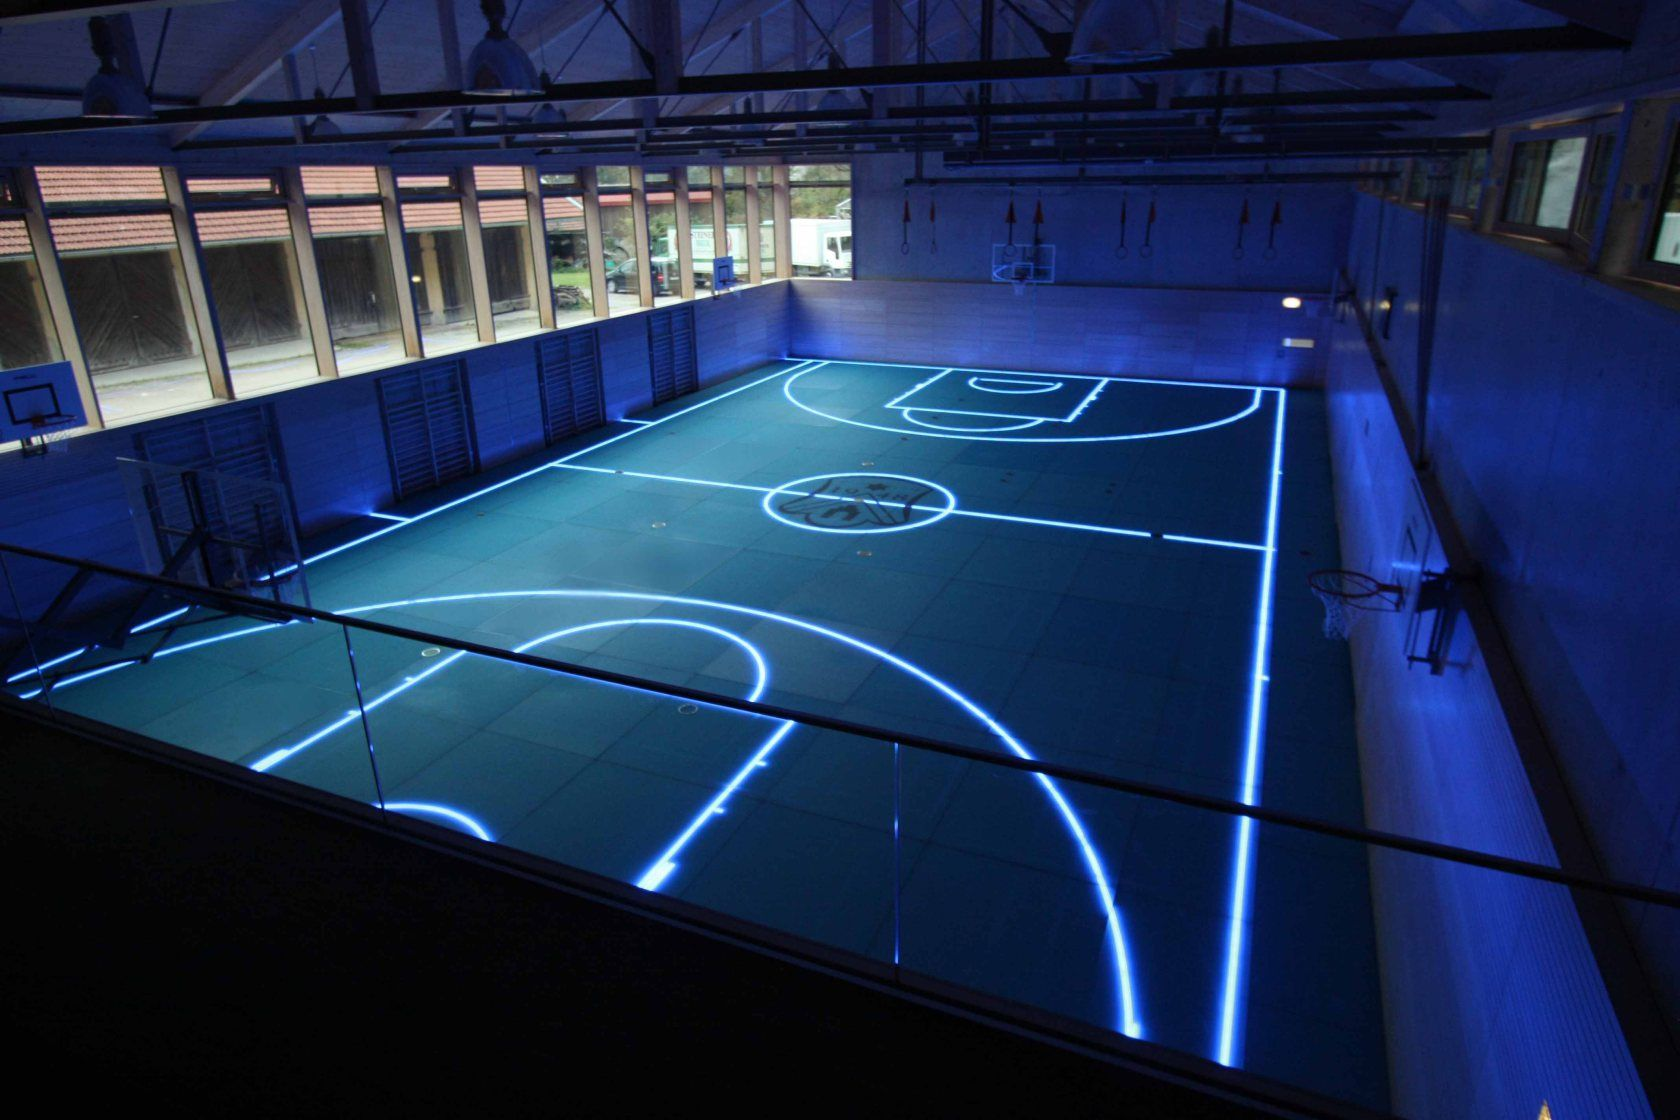 futuristic basketball court made in germany glass floor